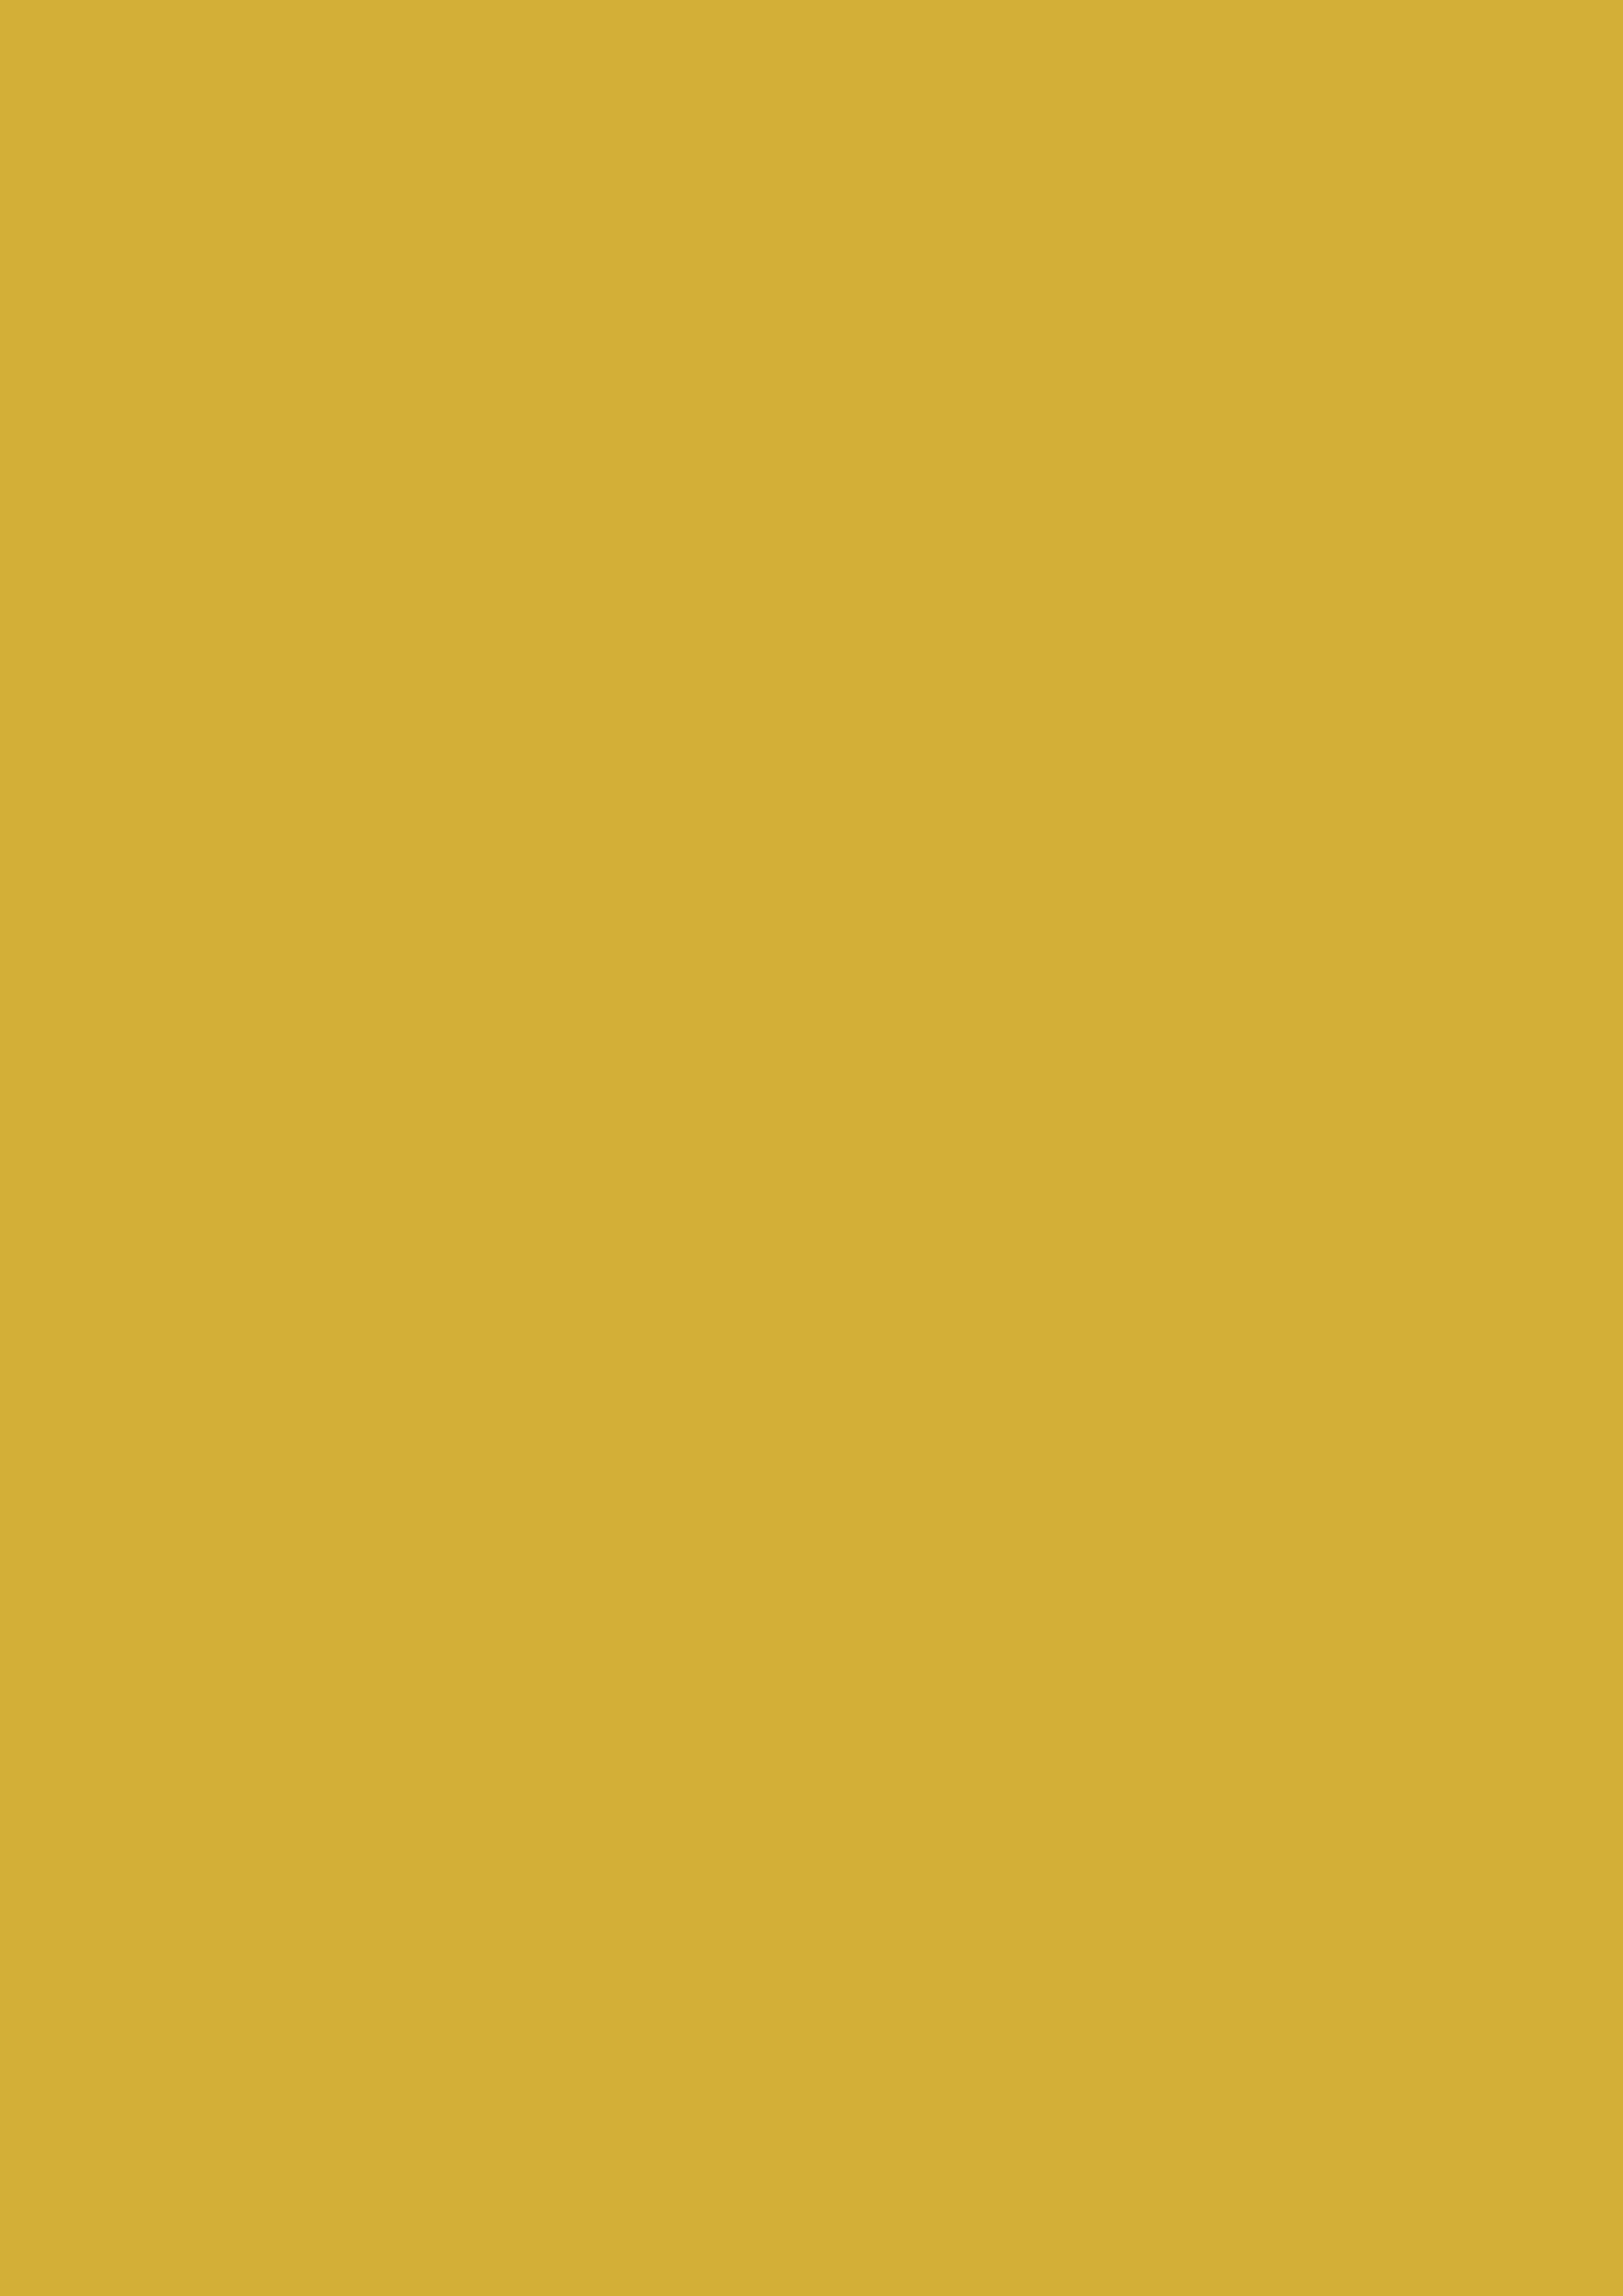 2480x3508 Gold Metallic Solid Color Background